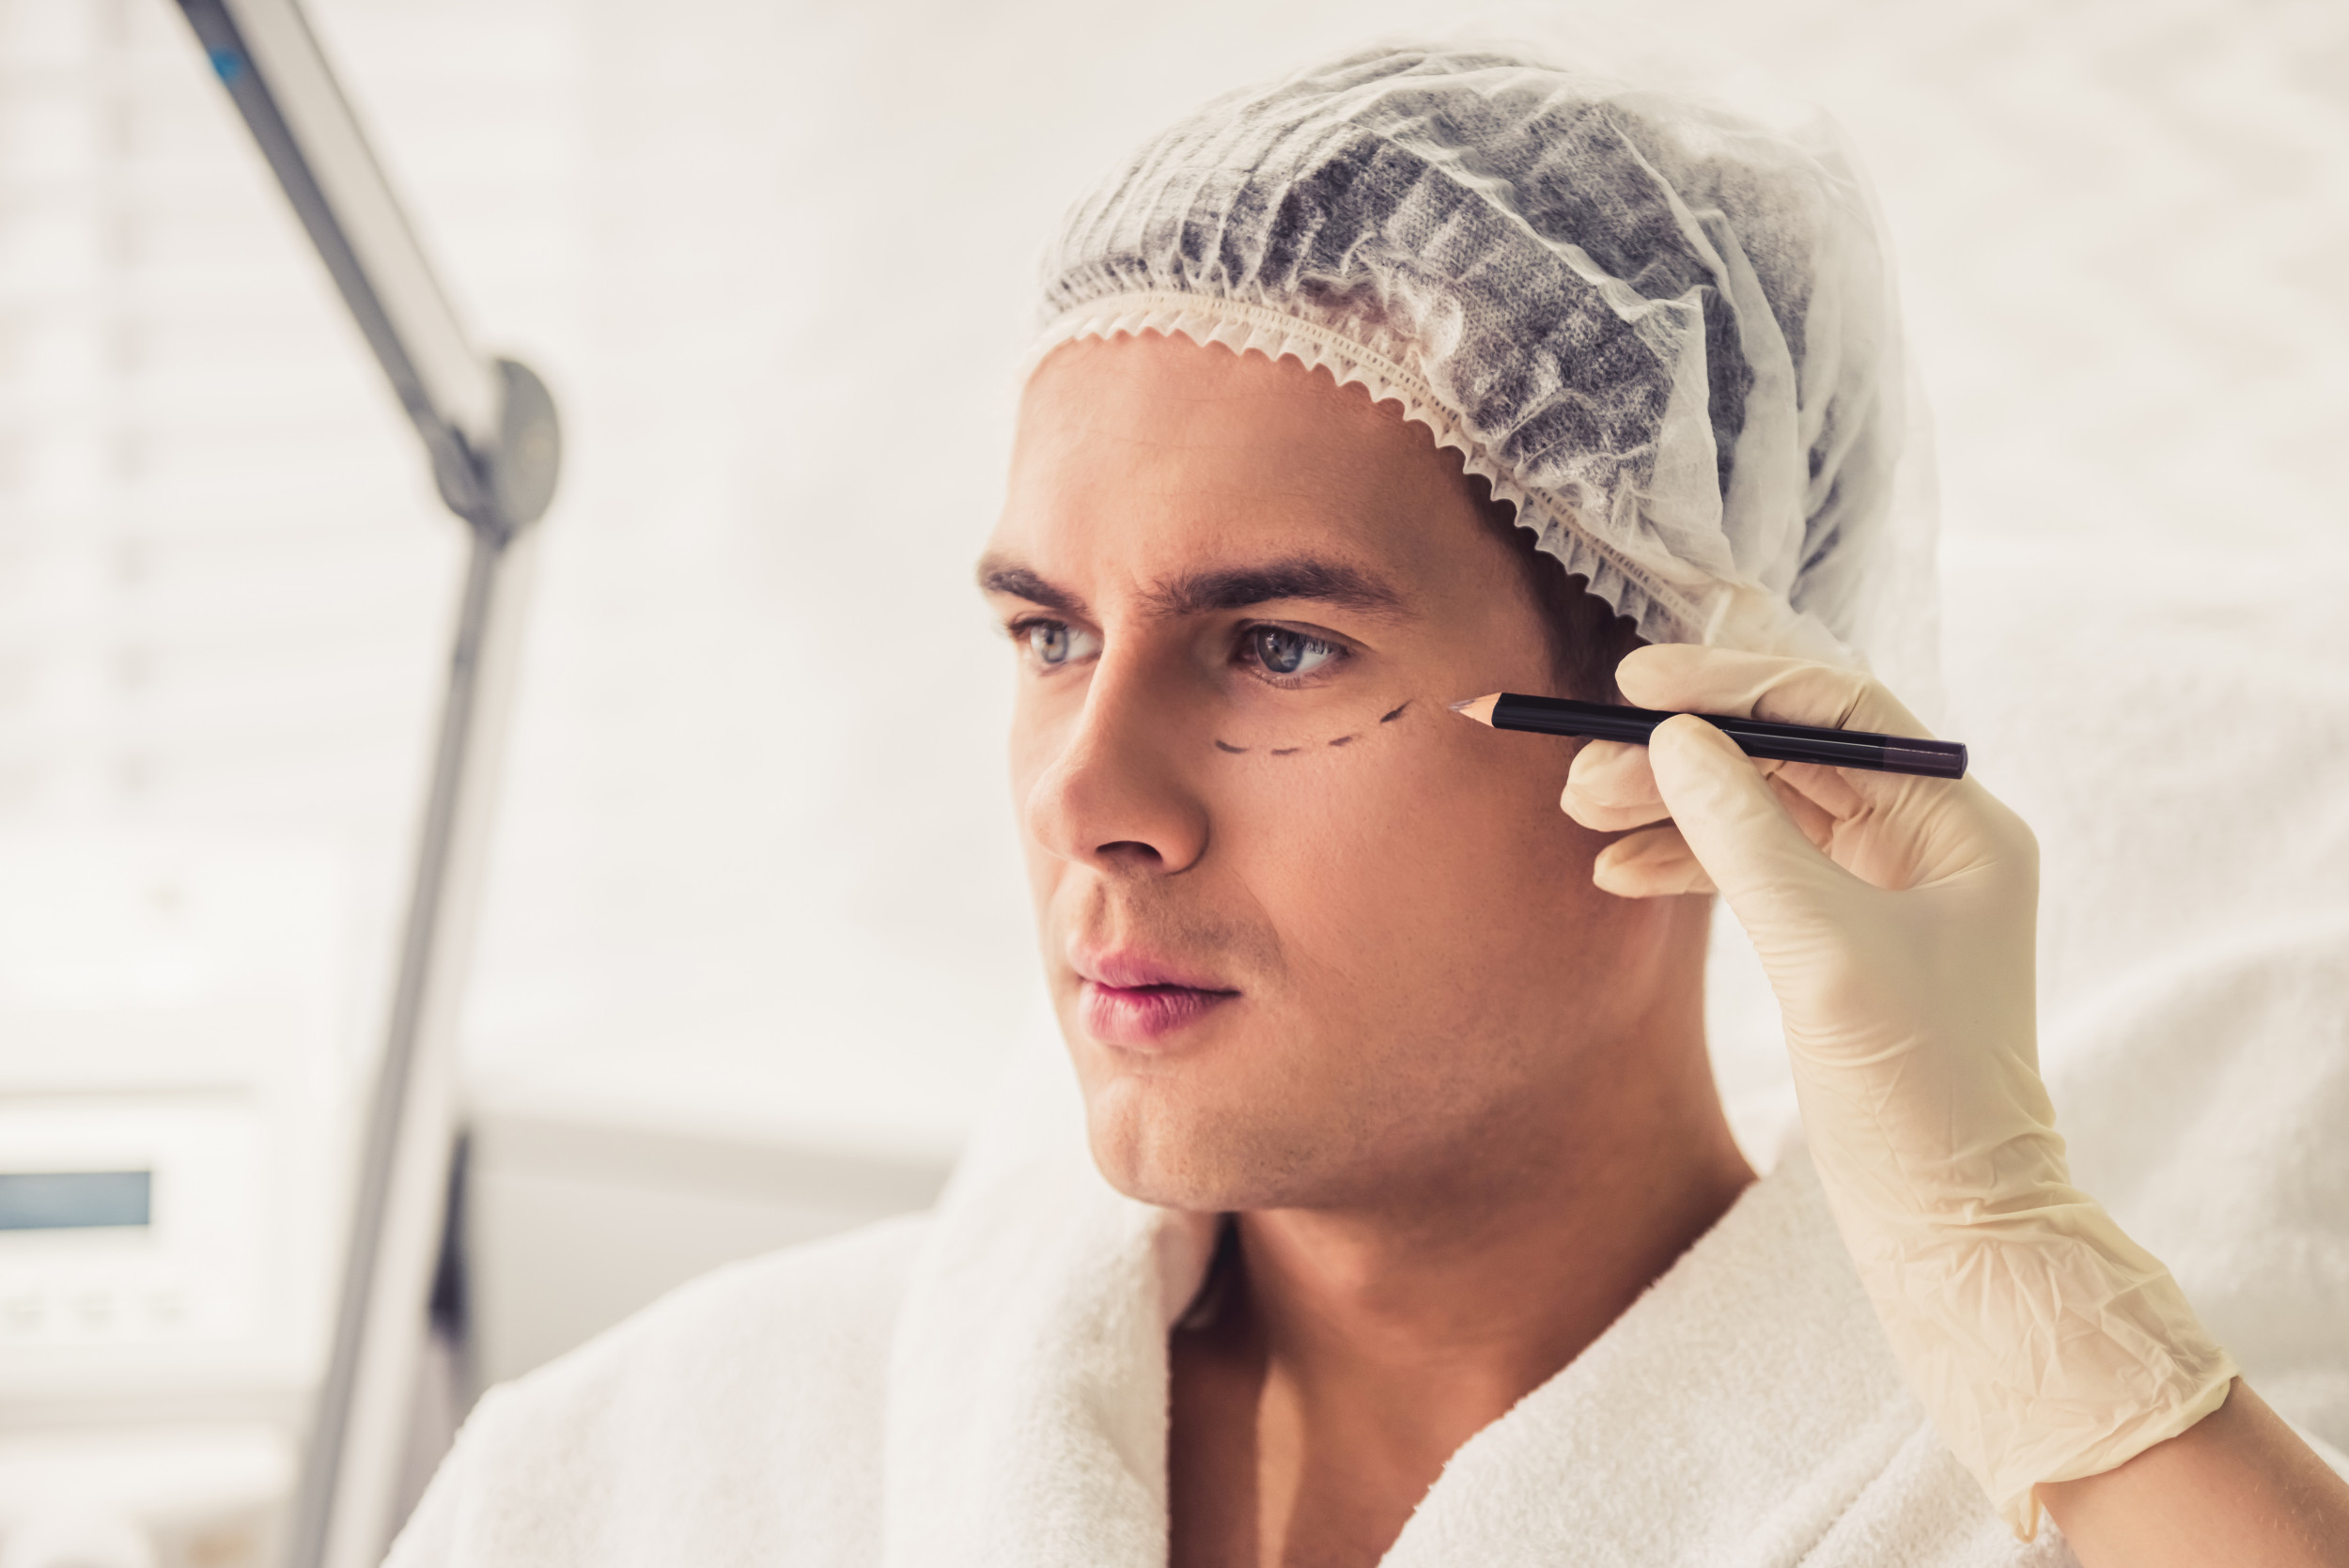 How To Find Plastic Surgeon – Know The Tips